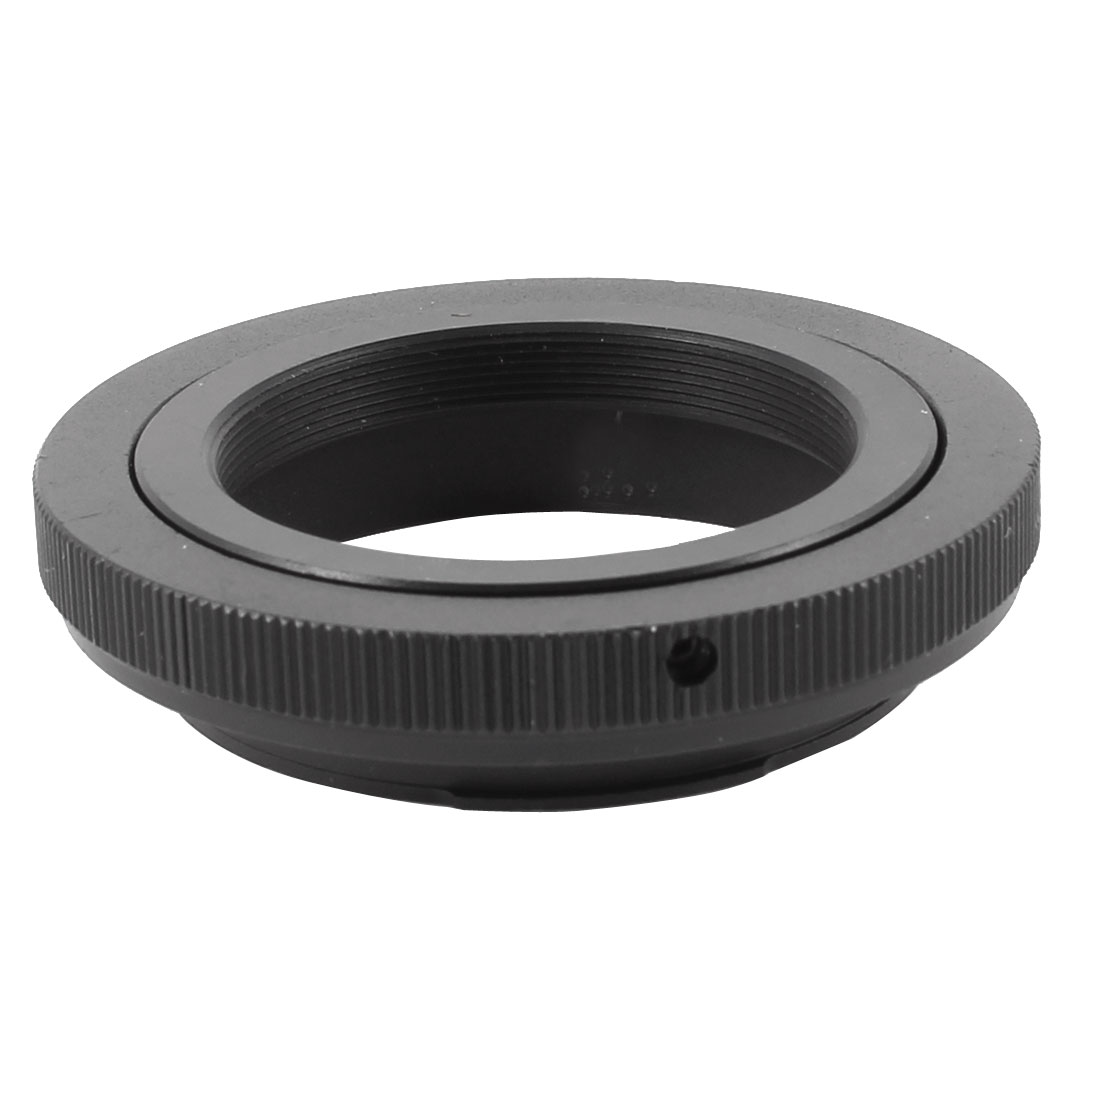 Unique Bargains Aluminum T T2 Lens Camera Body Mount Adapter T2-EOS for Canon EOS DSLR